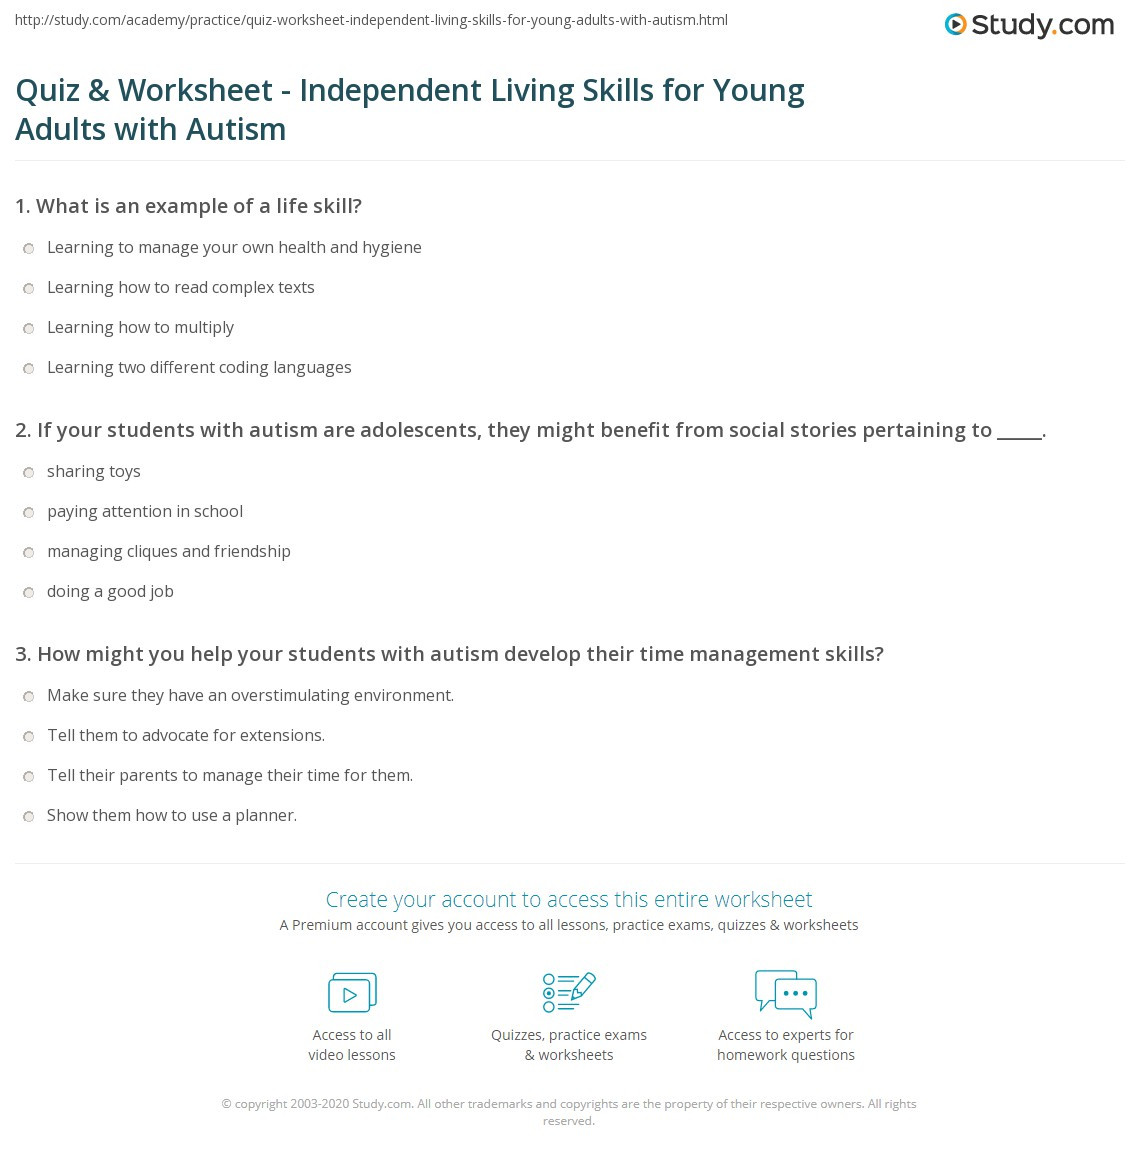 Daily Life Skills Worksheets Quiz & Worksheet Independent Living Skills for Young